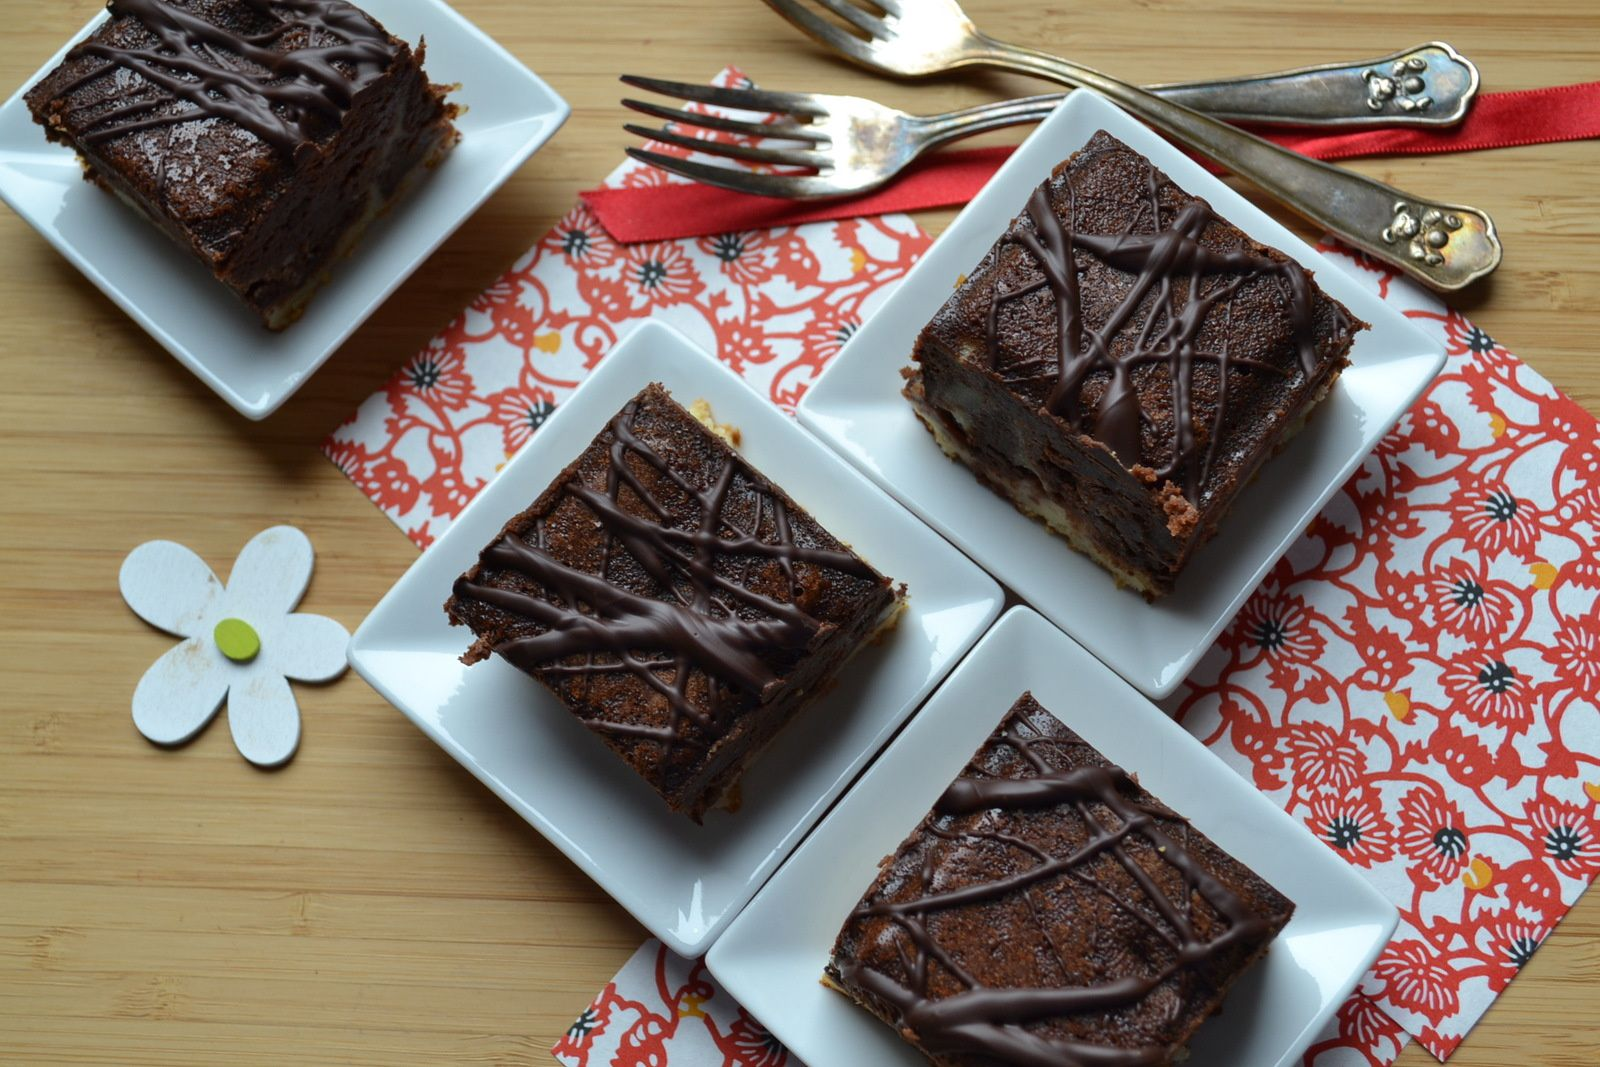 Cheesecake au brownie